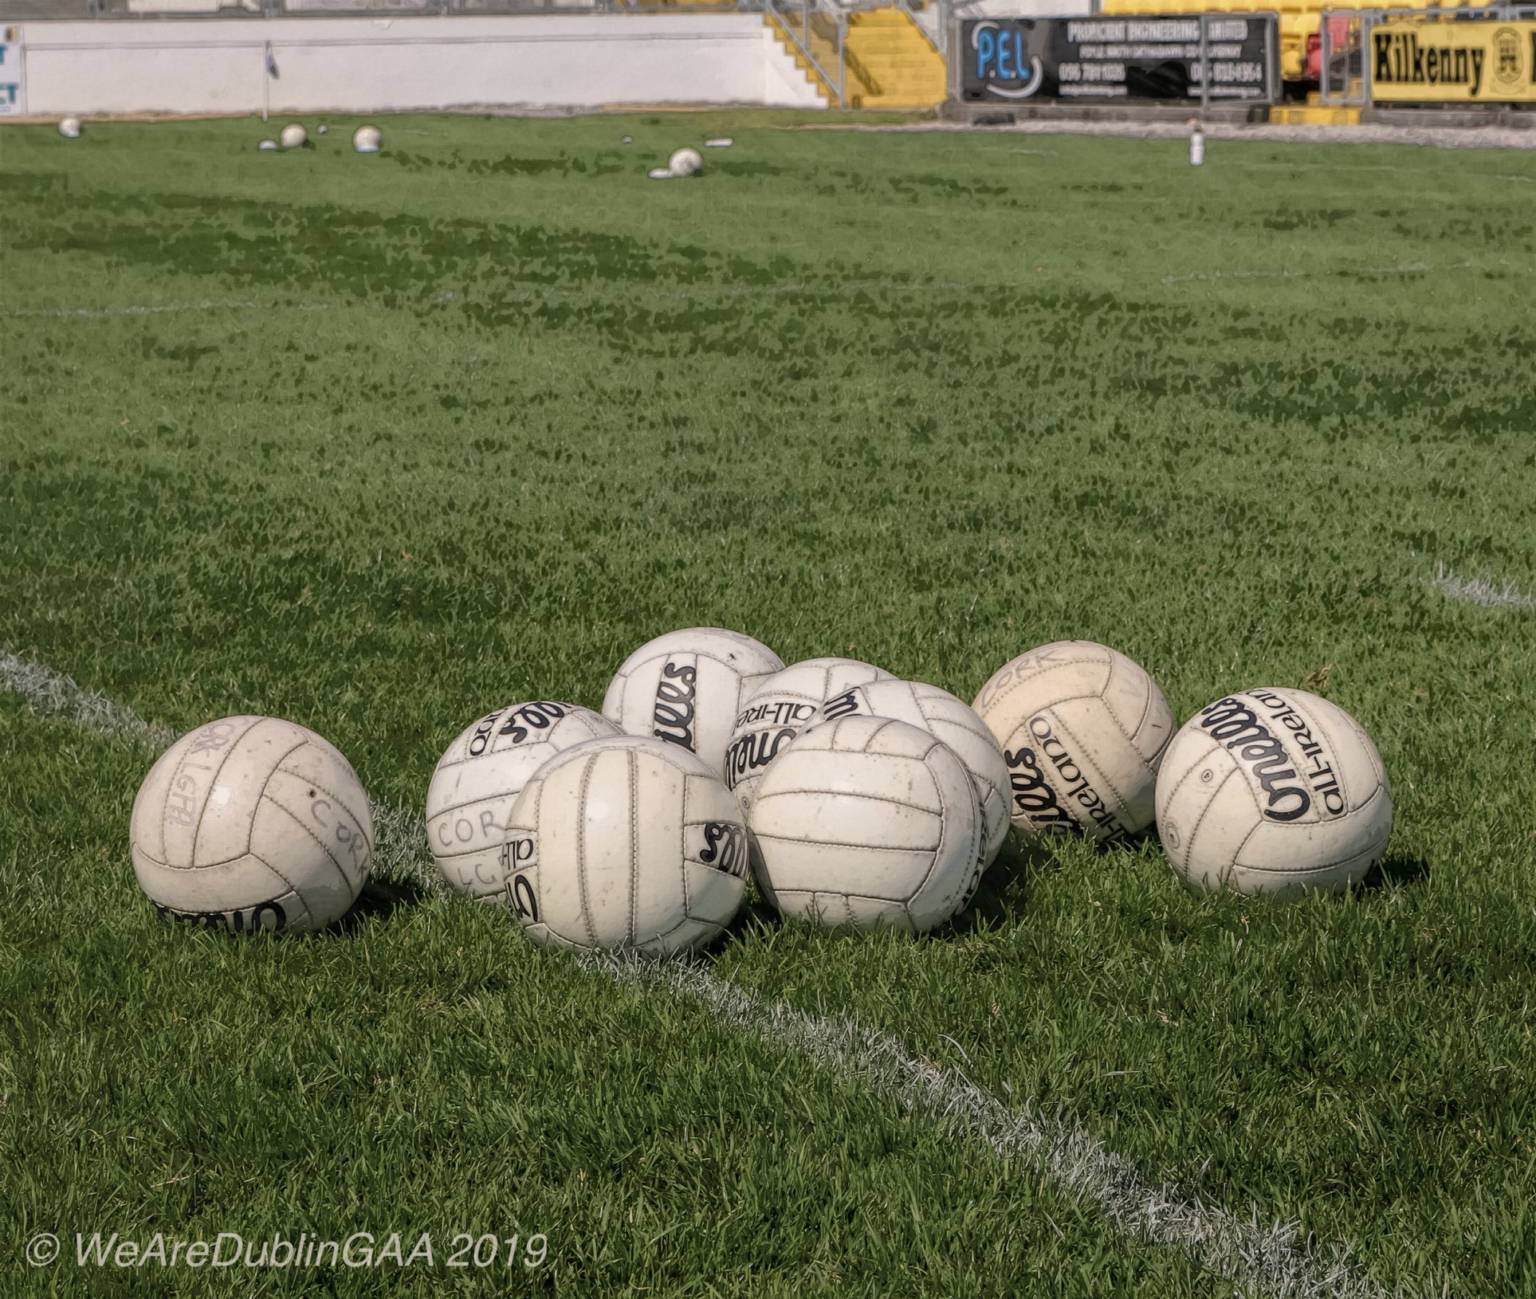 Gaelic Footballs sitting on a grass pitch to signify that the start of the All Ireland championship has been delayed due to Covid-19